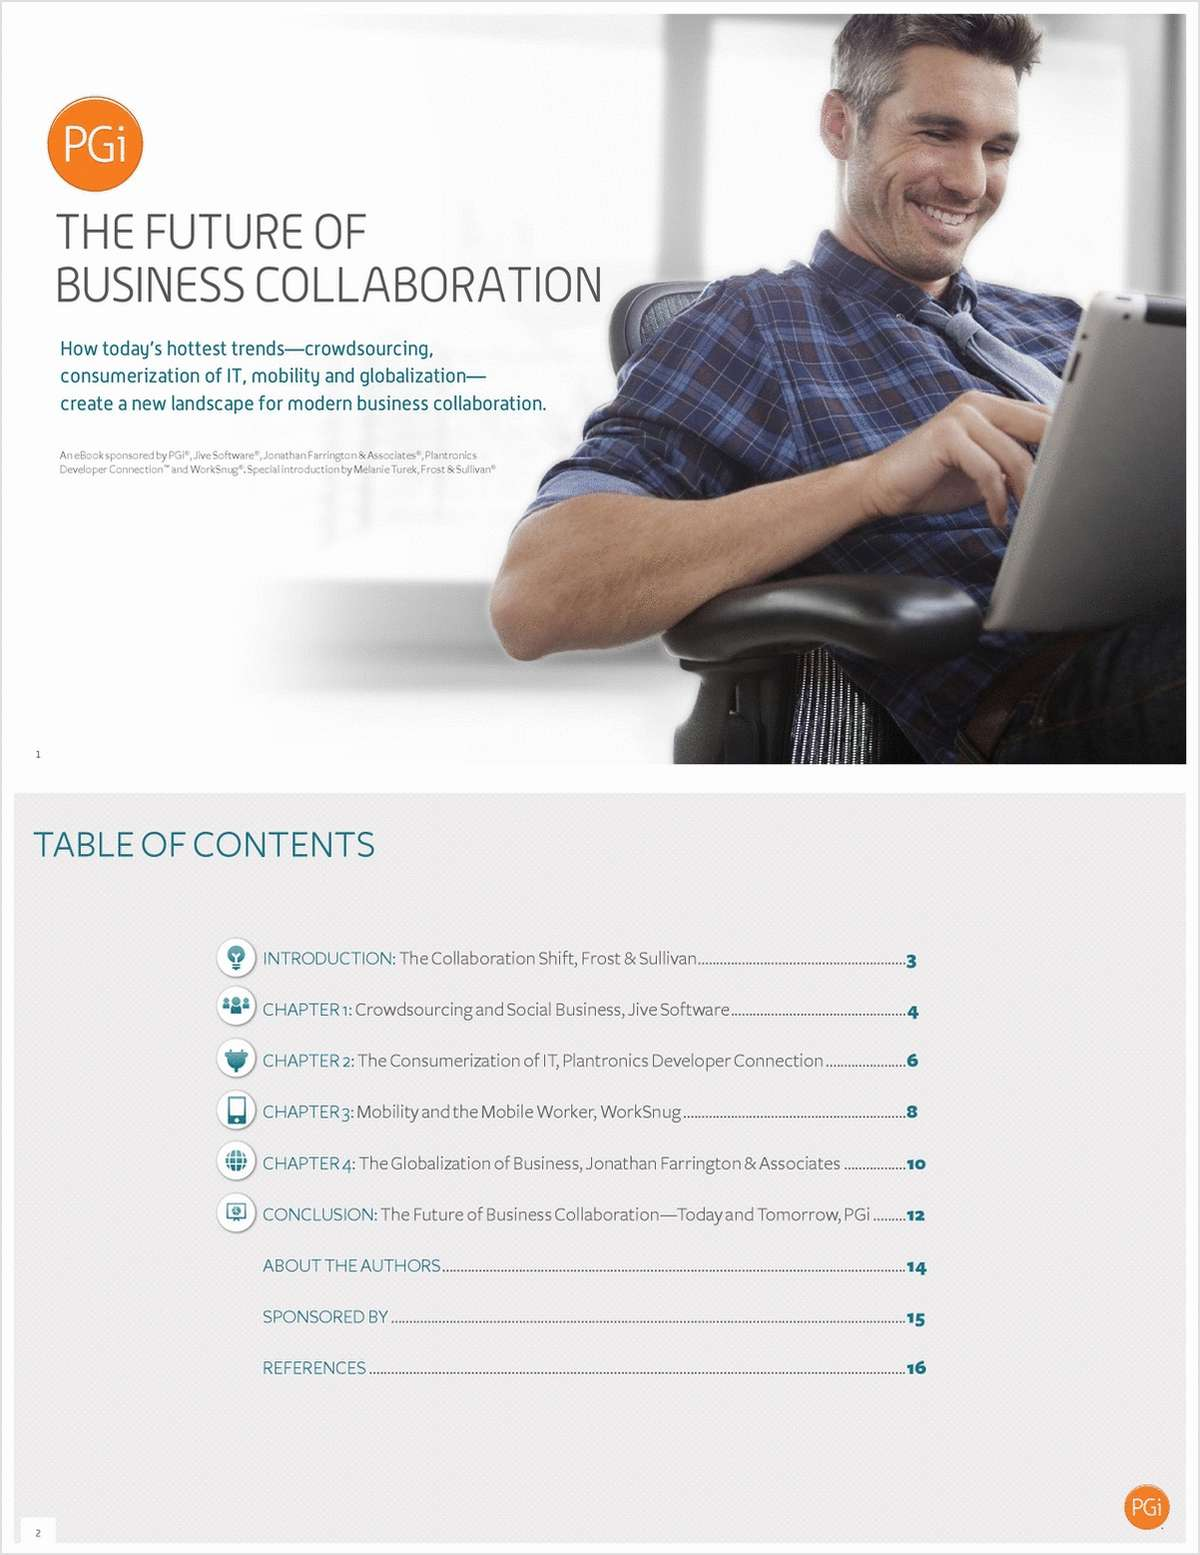 The Future of Business Collaboration